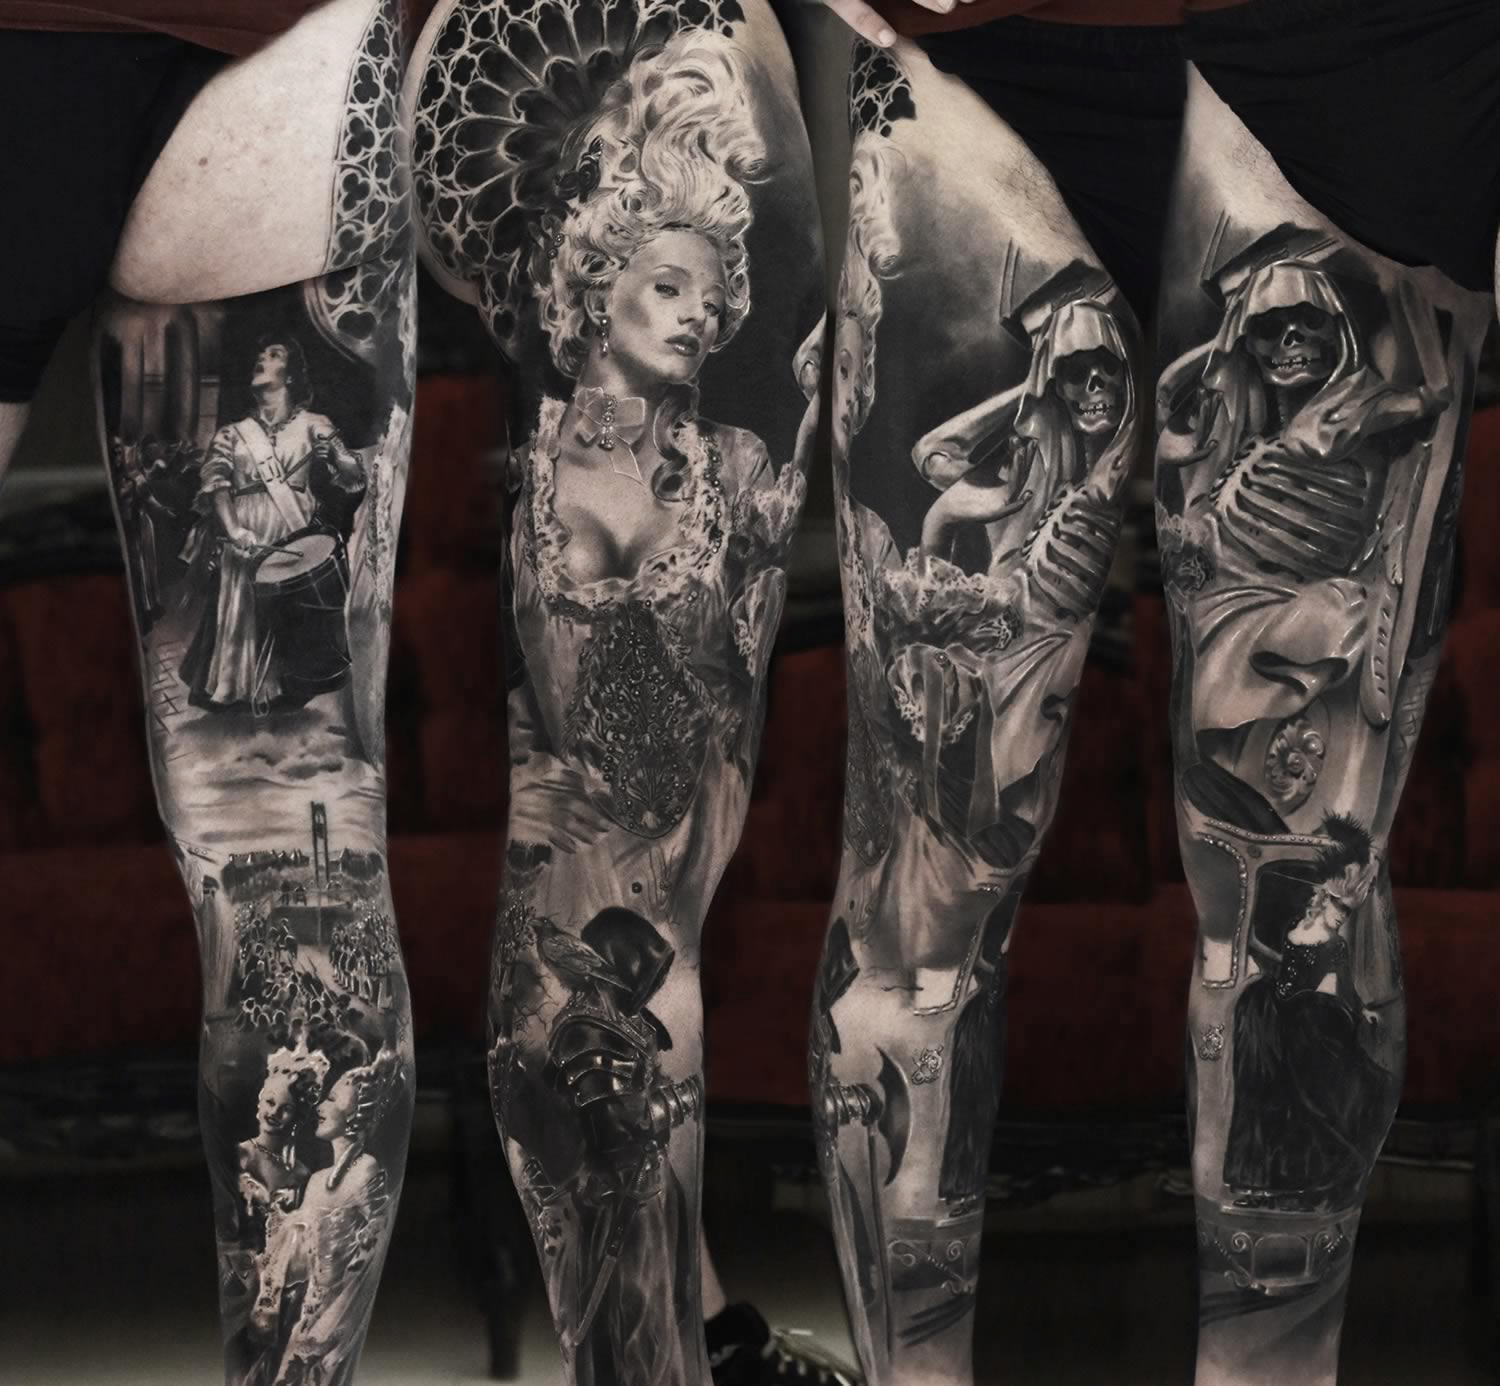 hyperrealistic tattoo on leg, ancien regime, woman with white wig